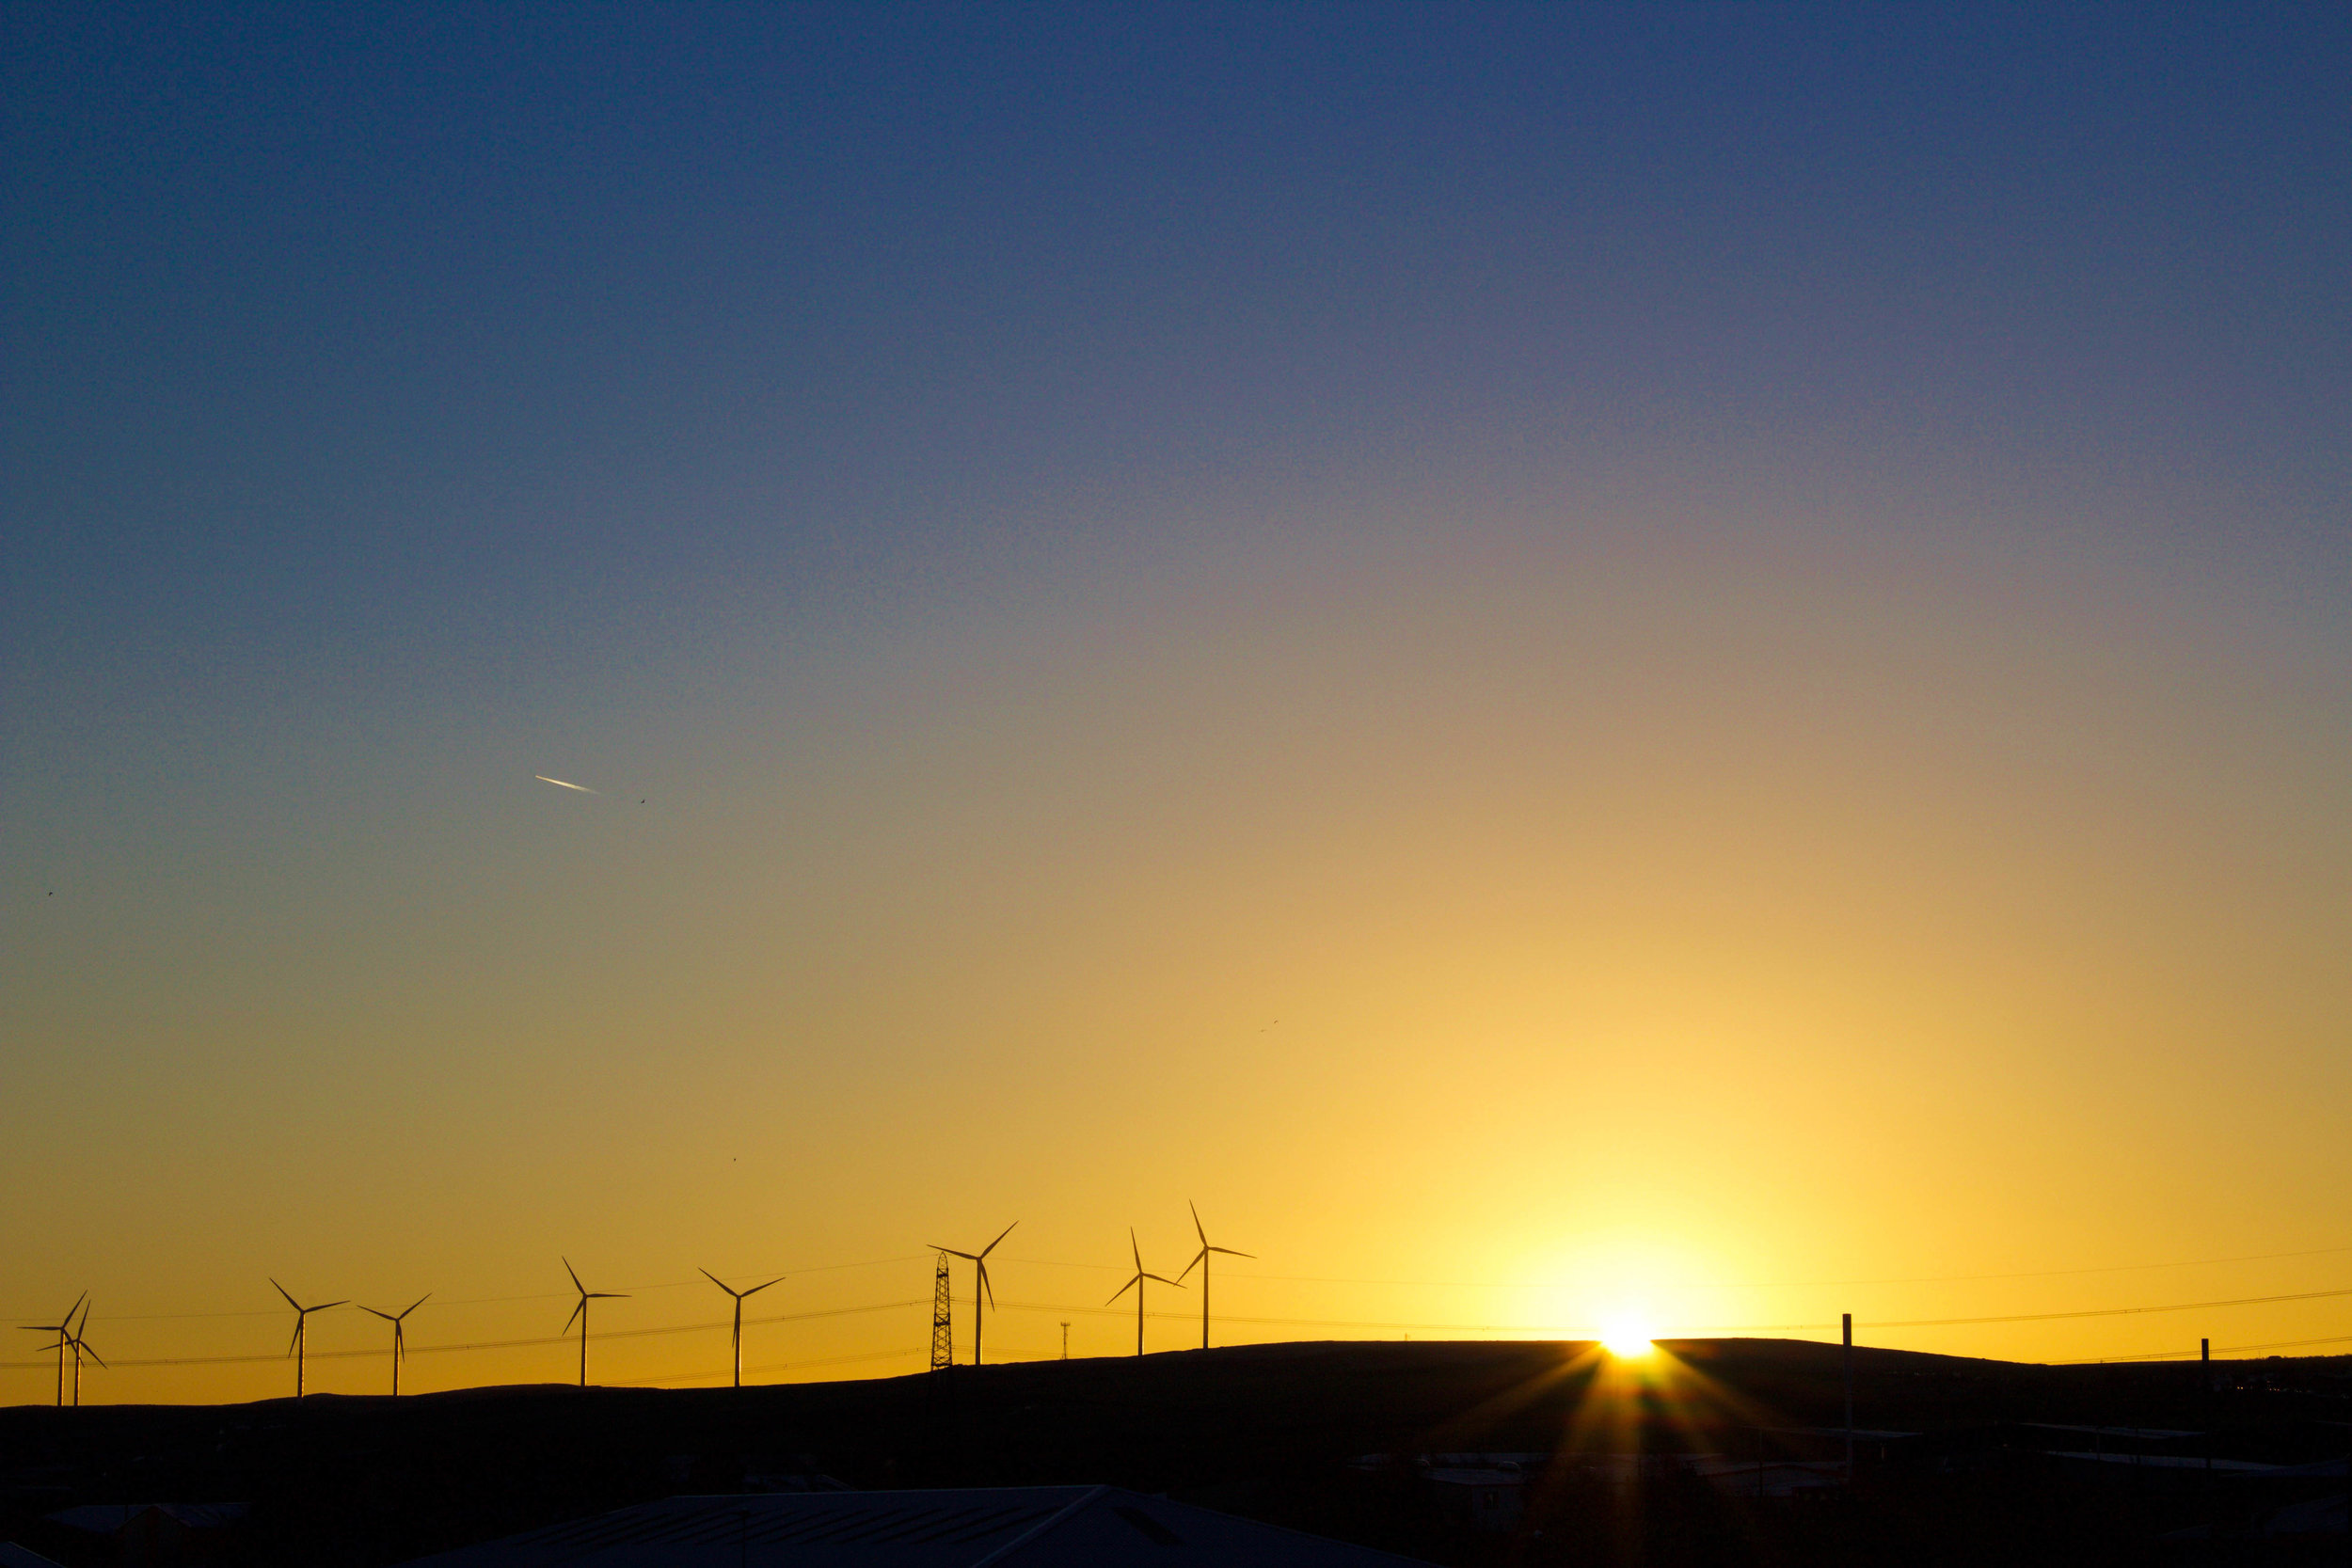 Google and DeepMind deploy AI to predict wind energy output -